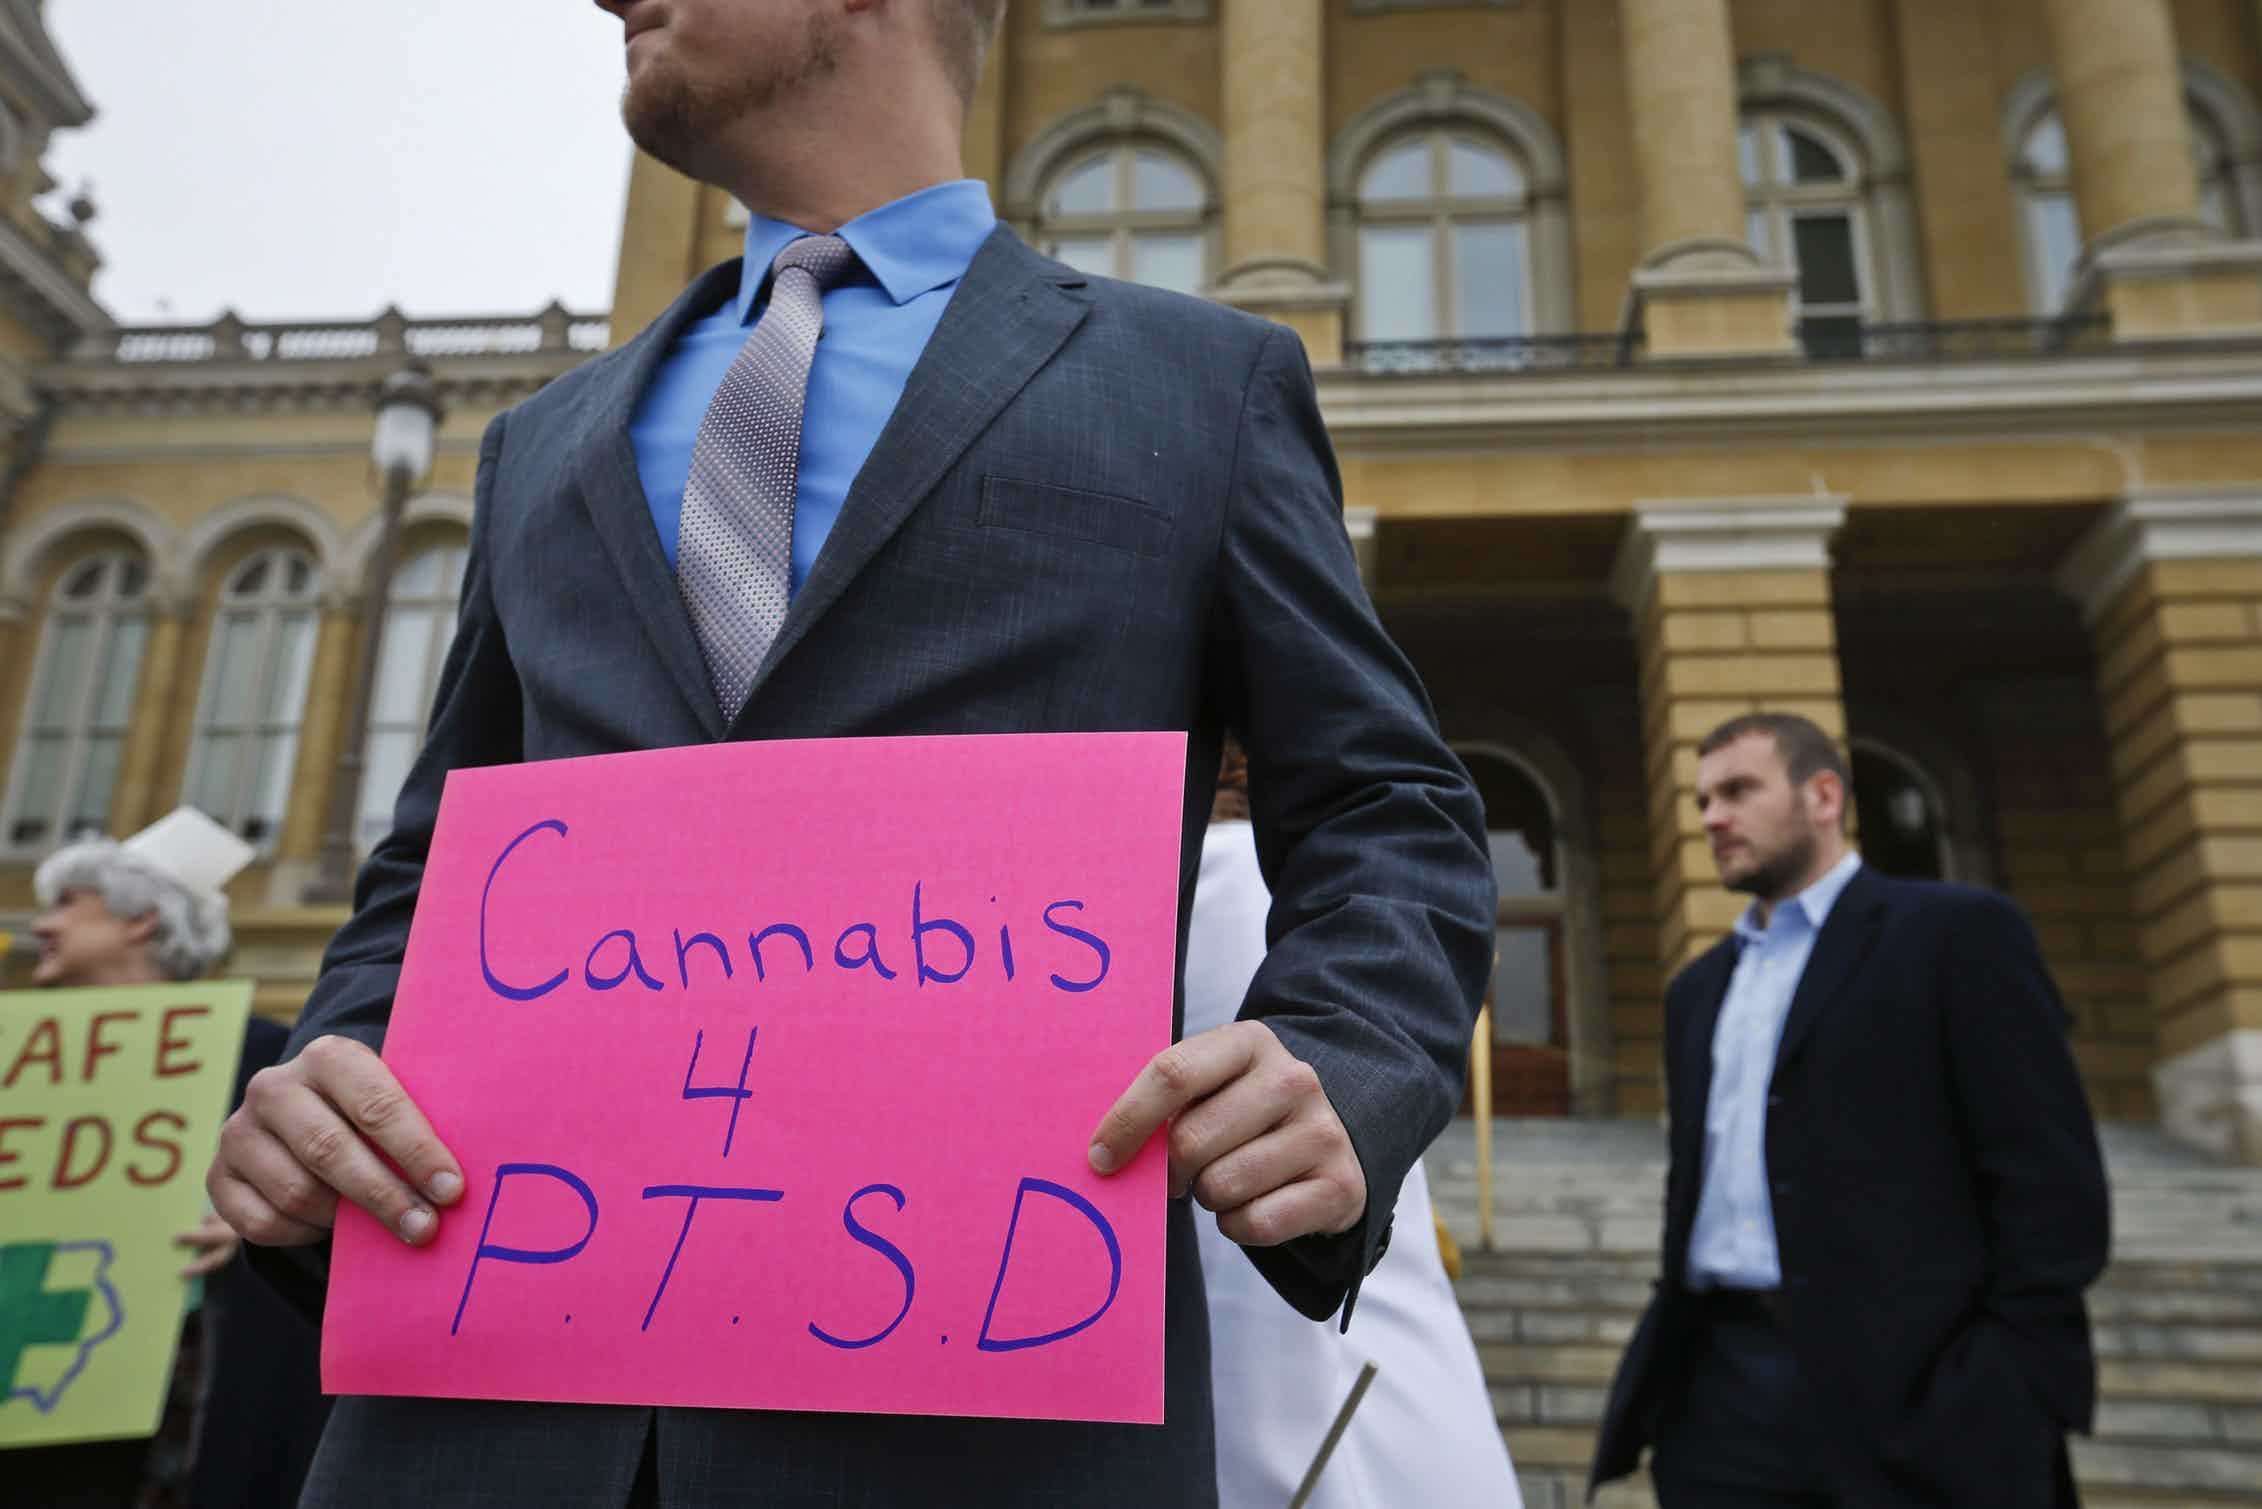 Cannabis shows potential for treating PTSD: New study